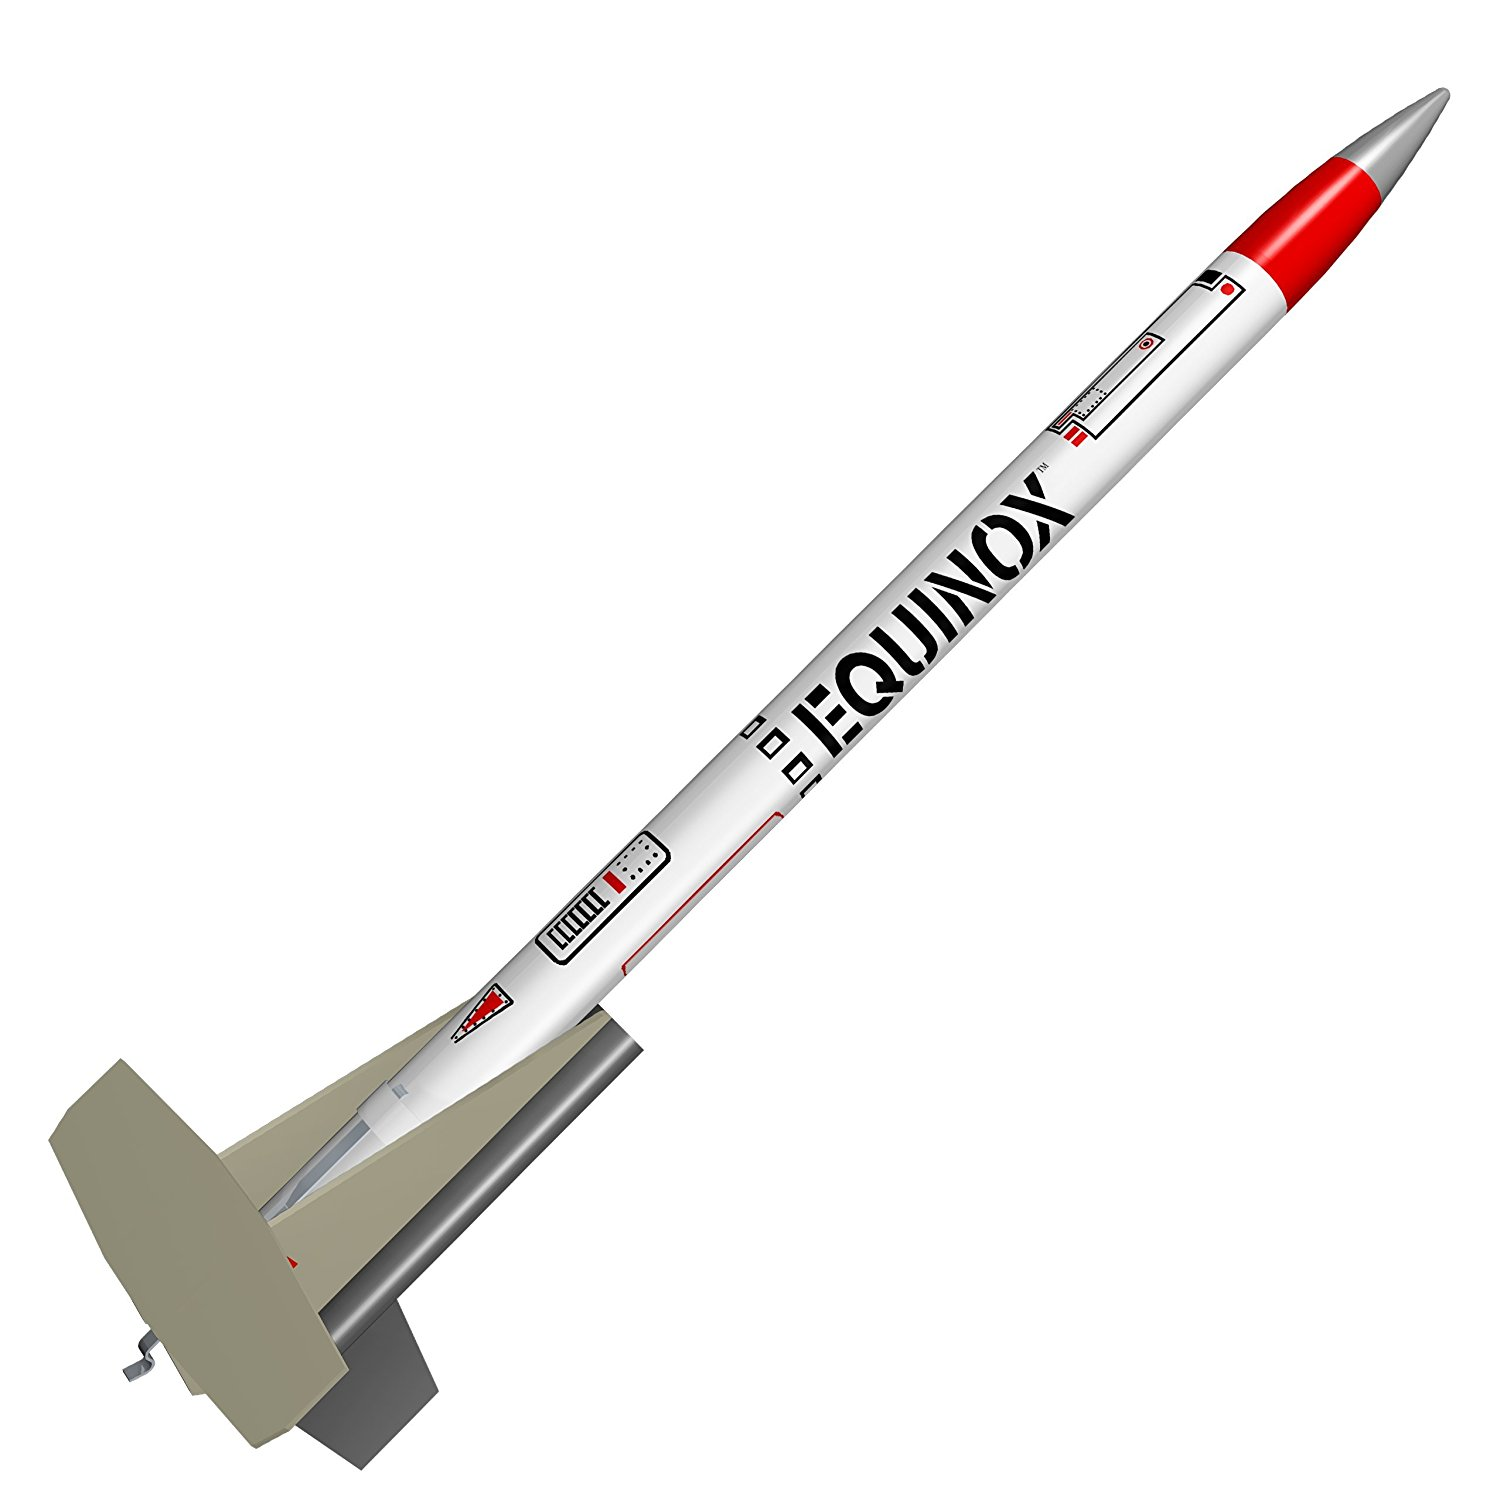 Equinox Model Rocket Kit..., By Estes Ship from US by